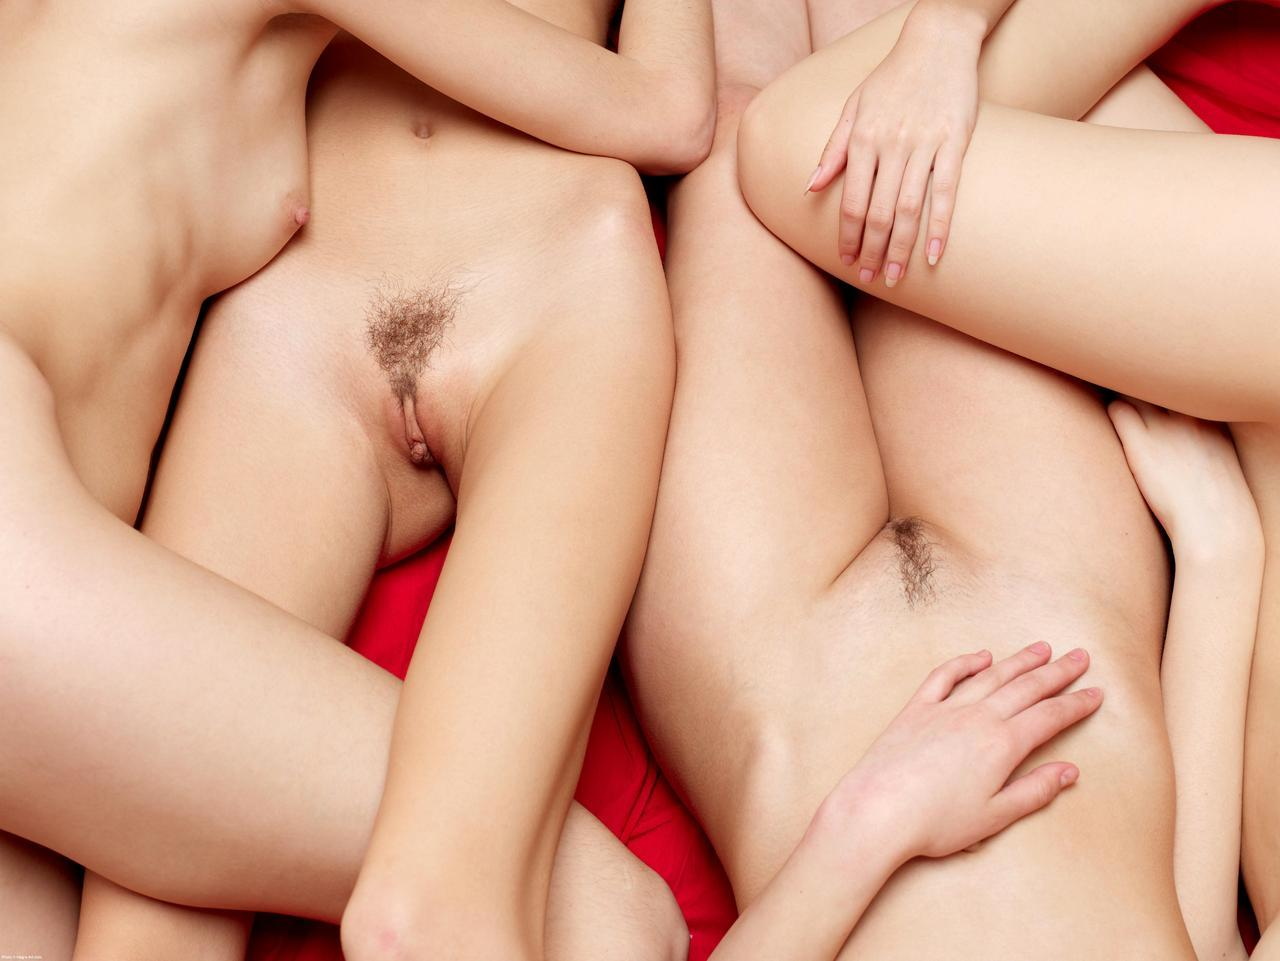 Hot sweaty nude women with pubes